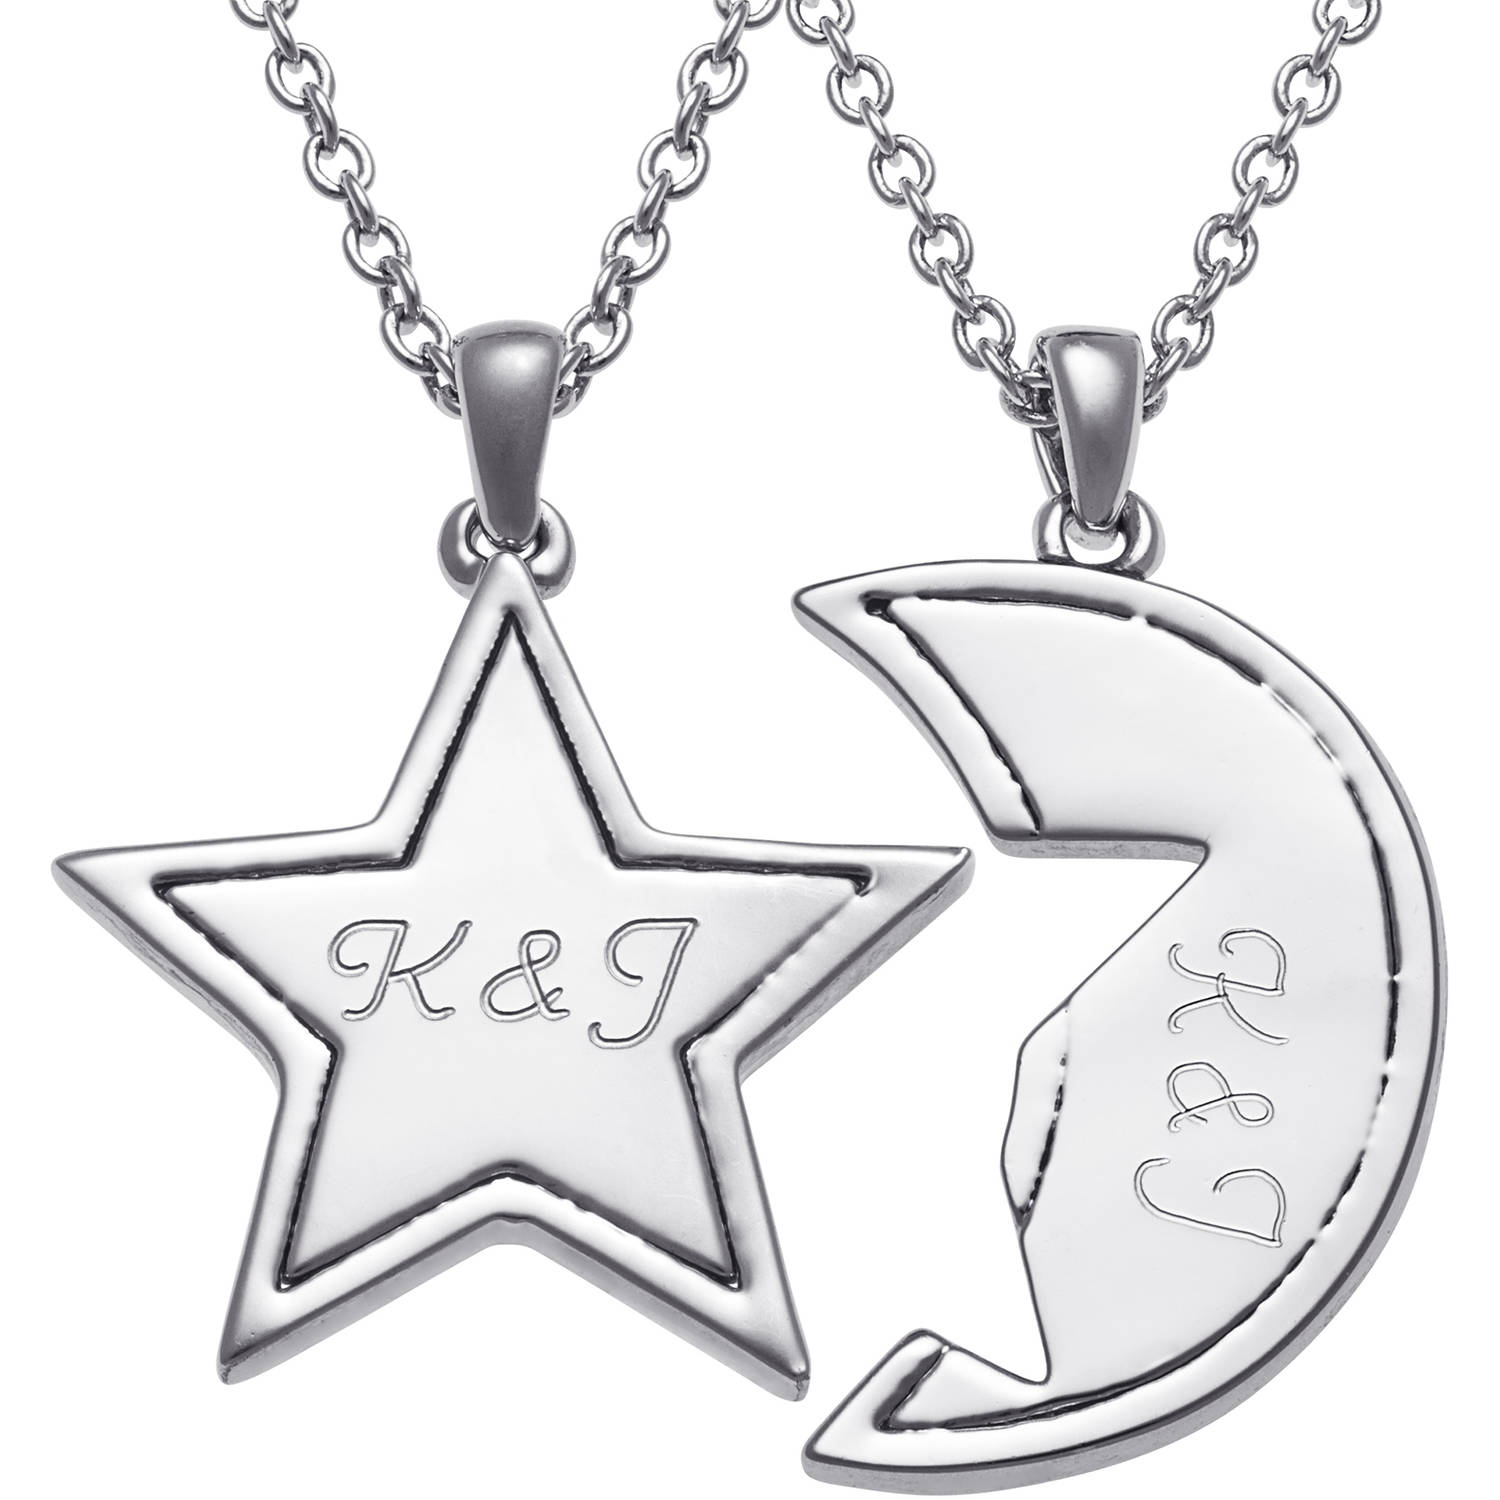 Personalized Rhodium-Tone Star and Moon Shareable Pendant Set